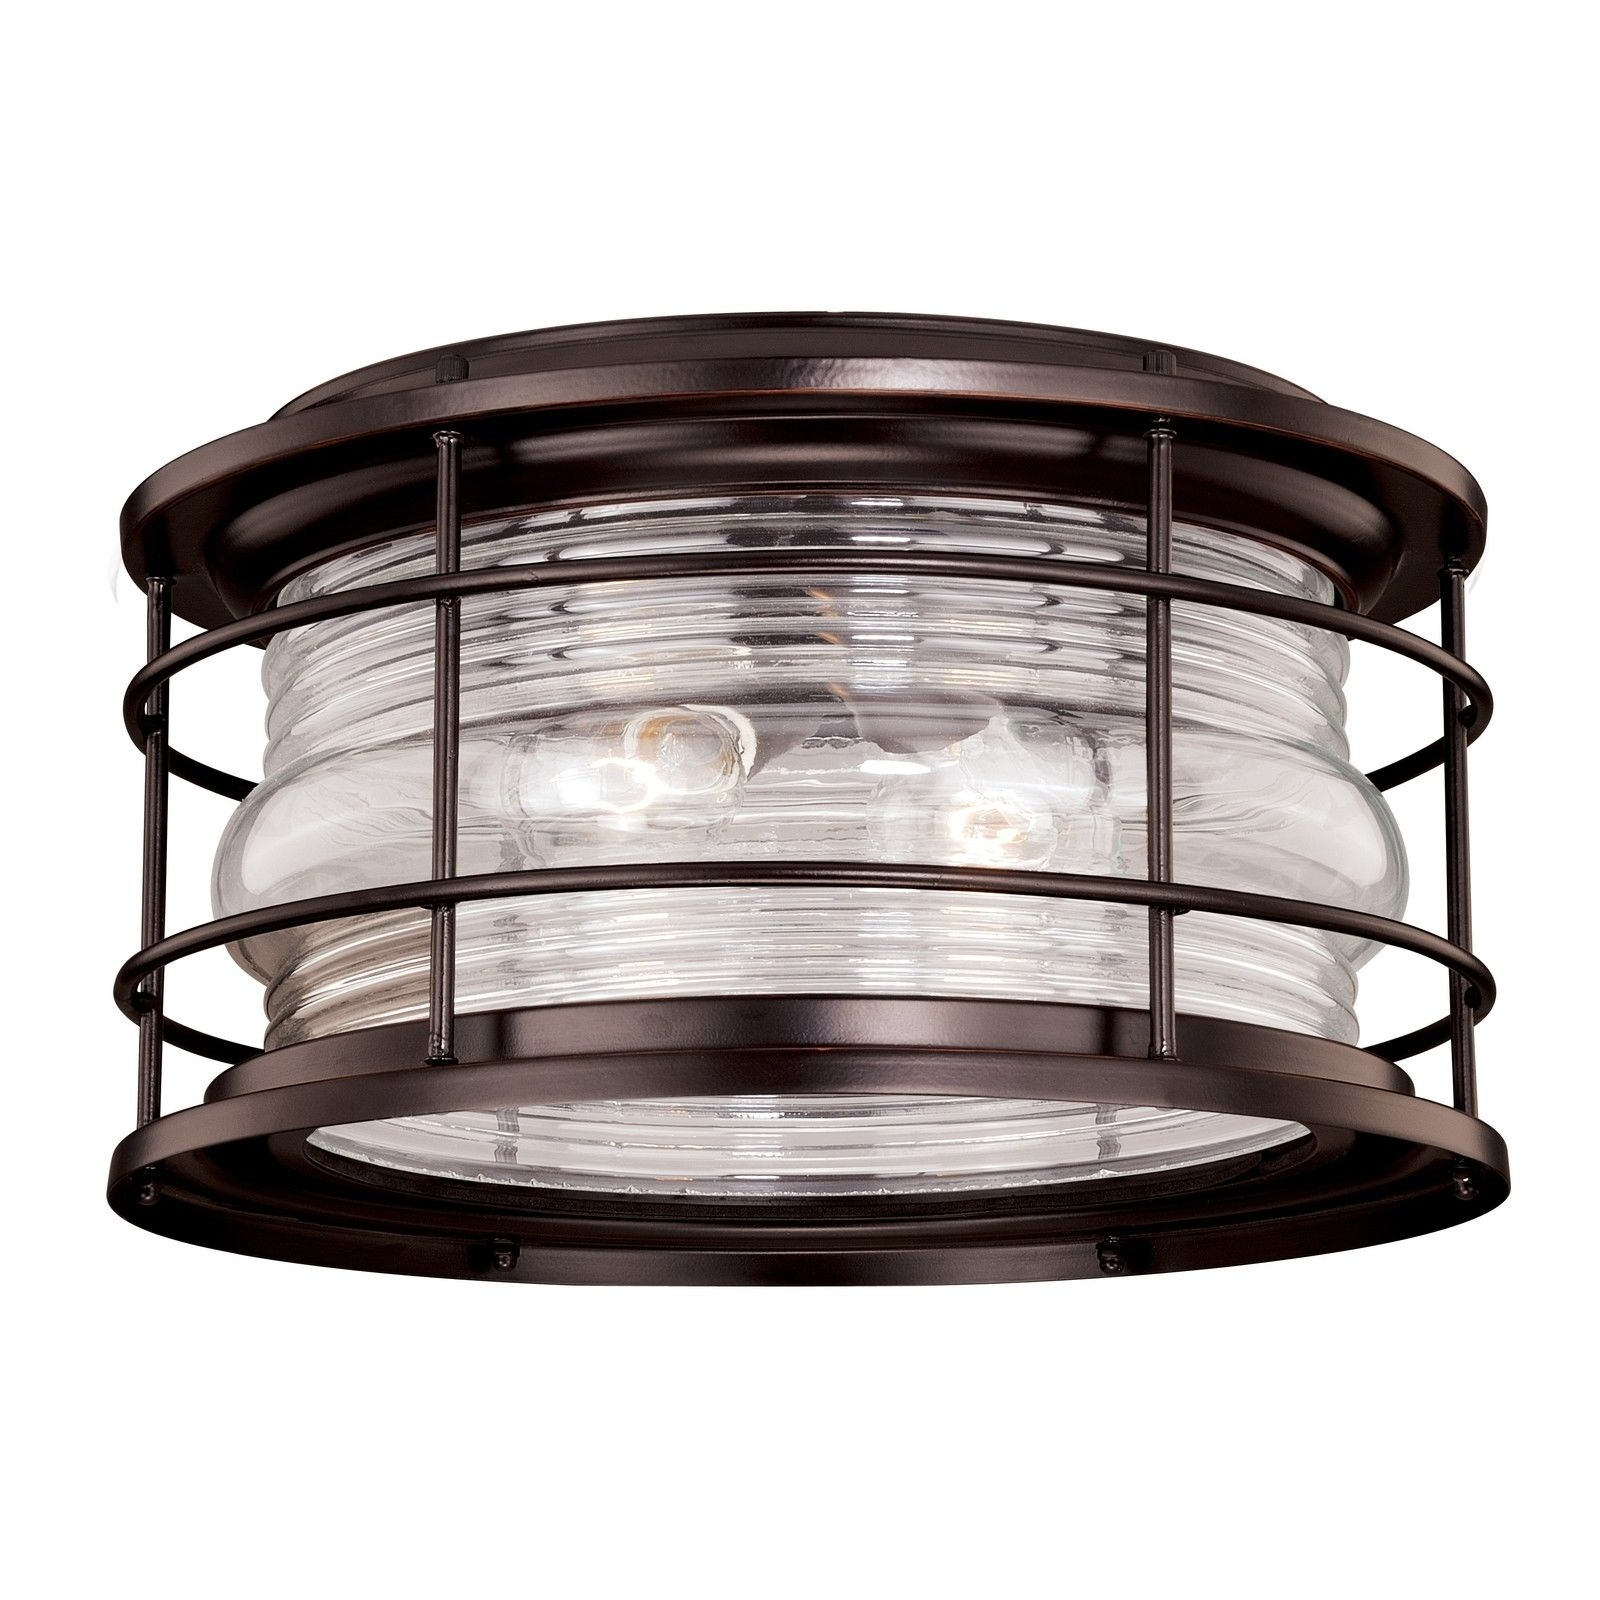 Inspiration about Vaxcel Lighting T0166 Hyannis Outdoor Ceiling Light In Burnished Intended For Outdoor Ceiling Lights At Ebay (#12 of 15)